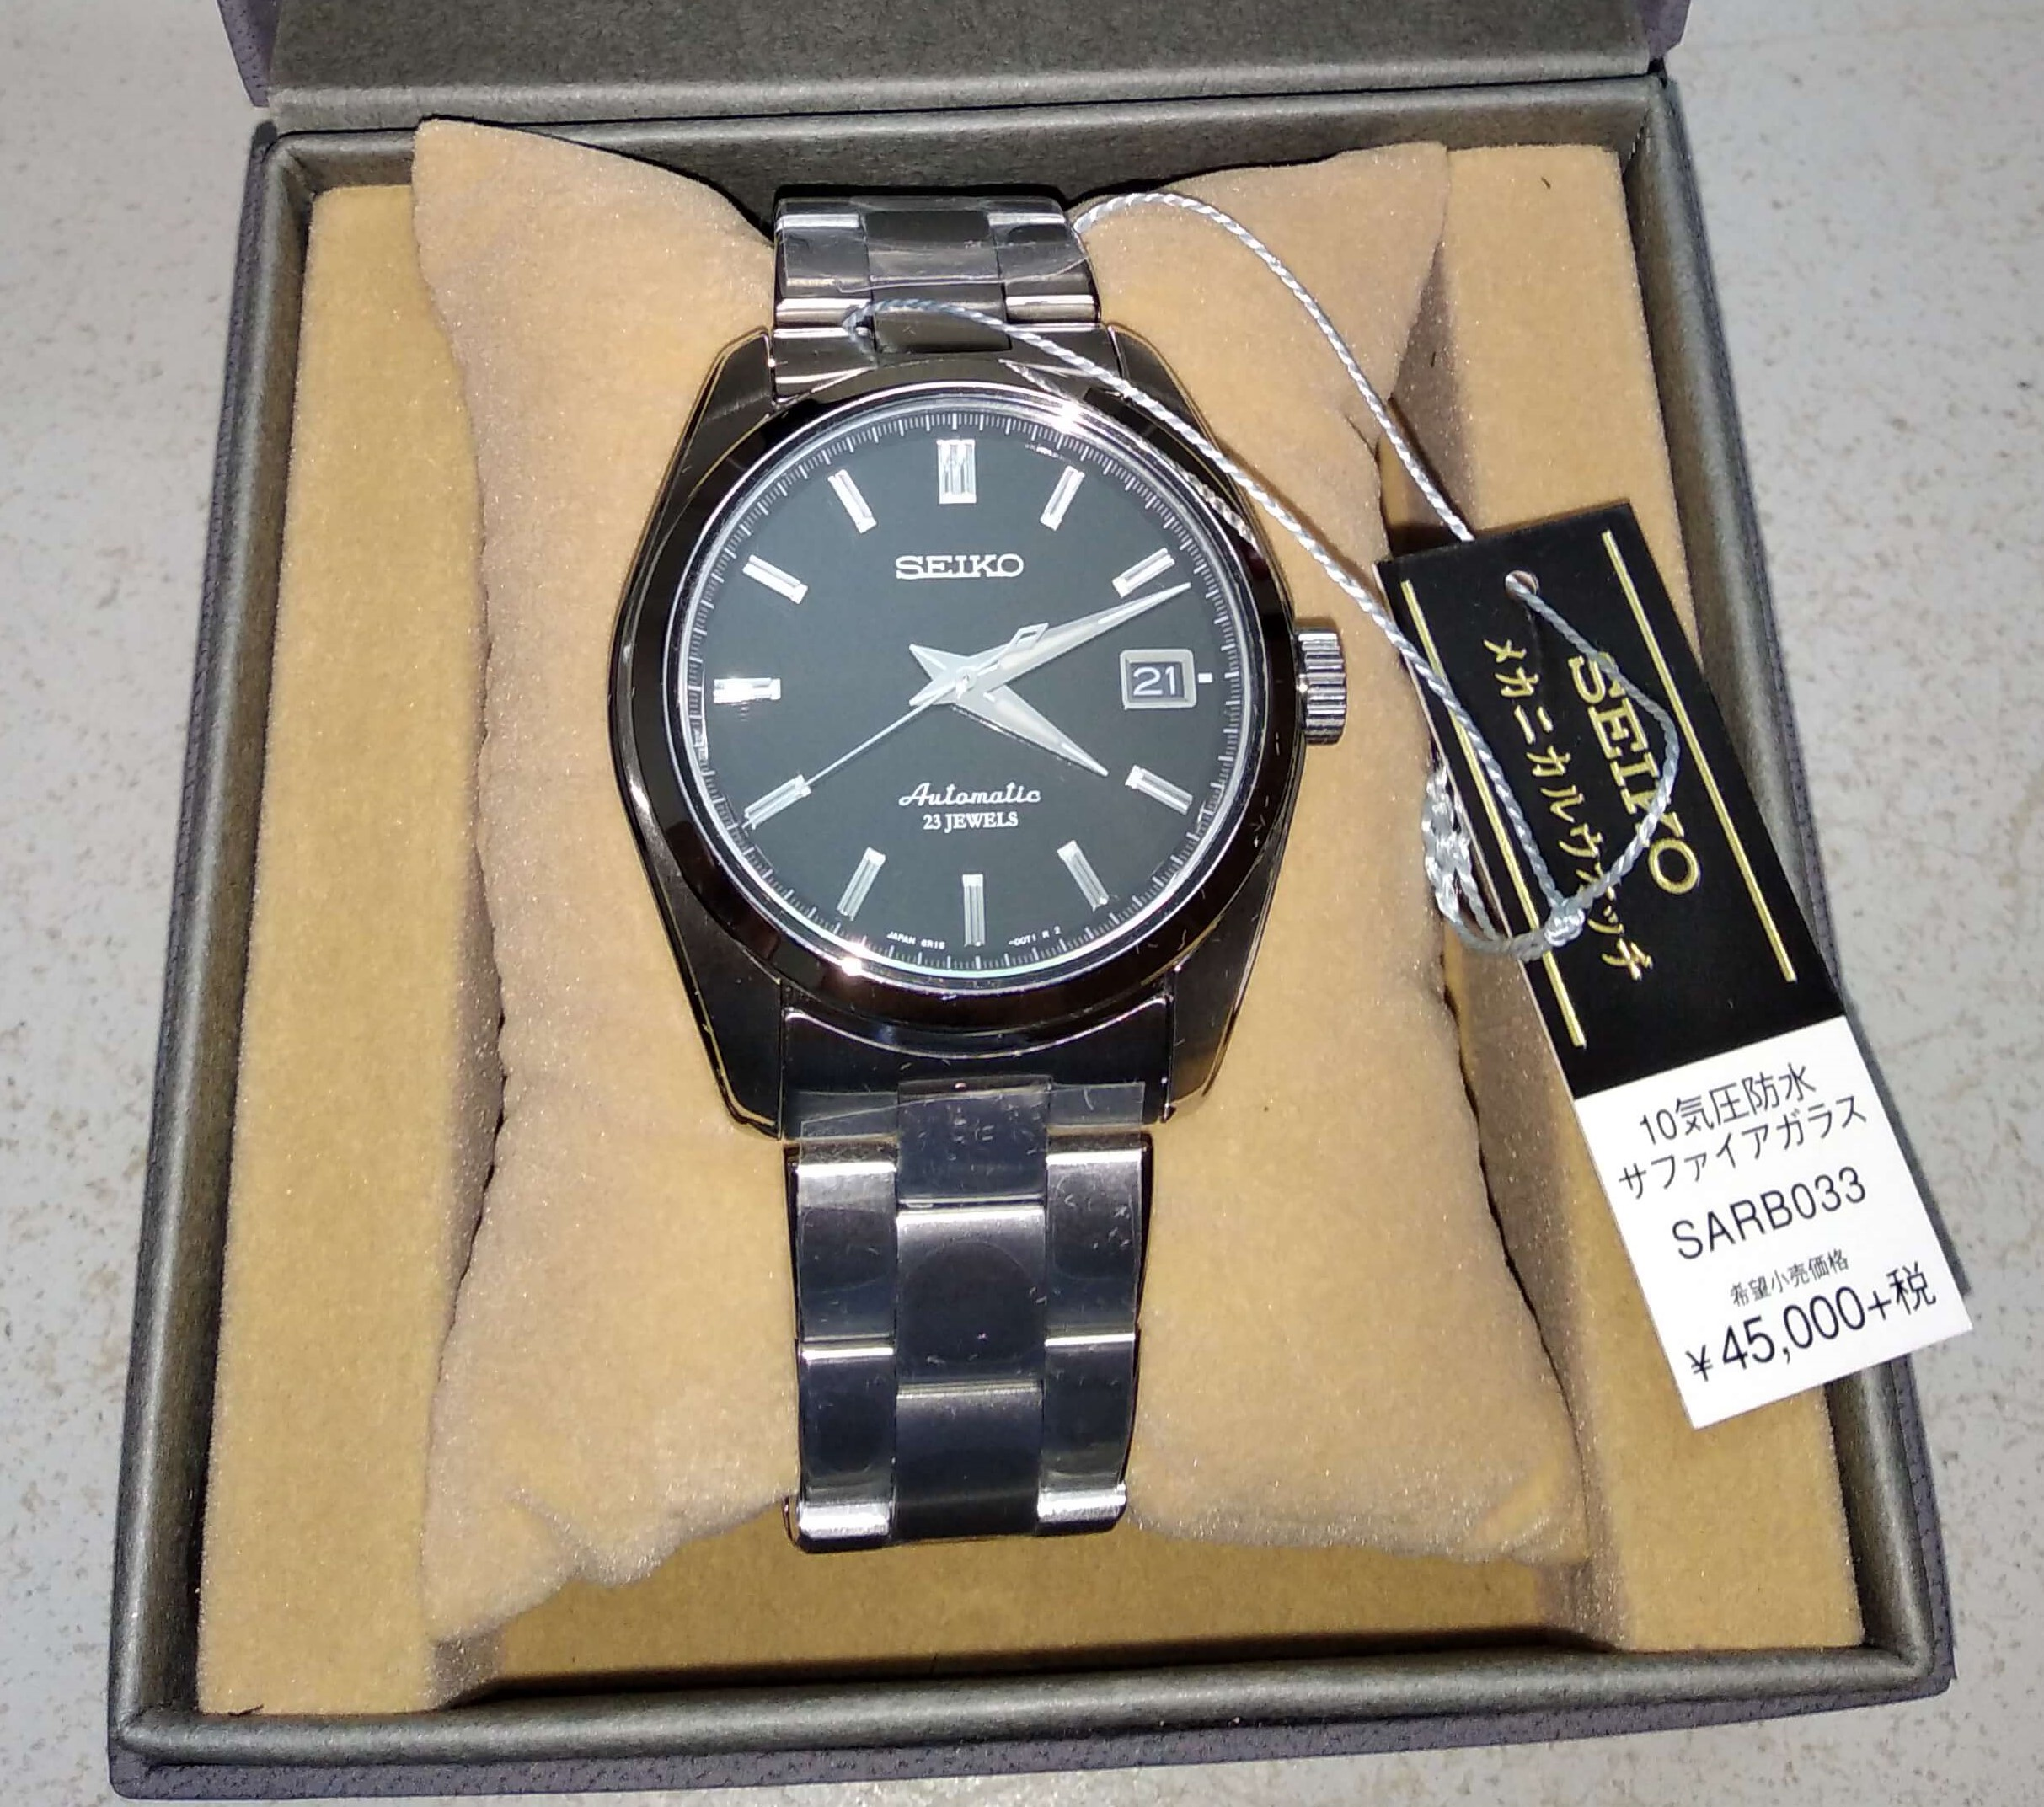 Seiko SARB033 in box